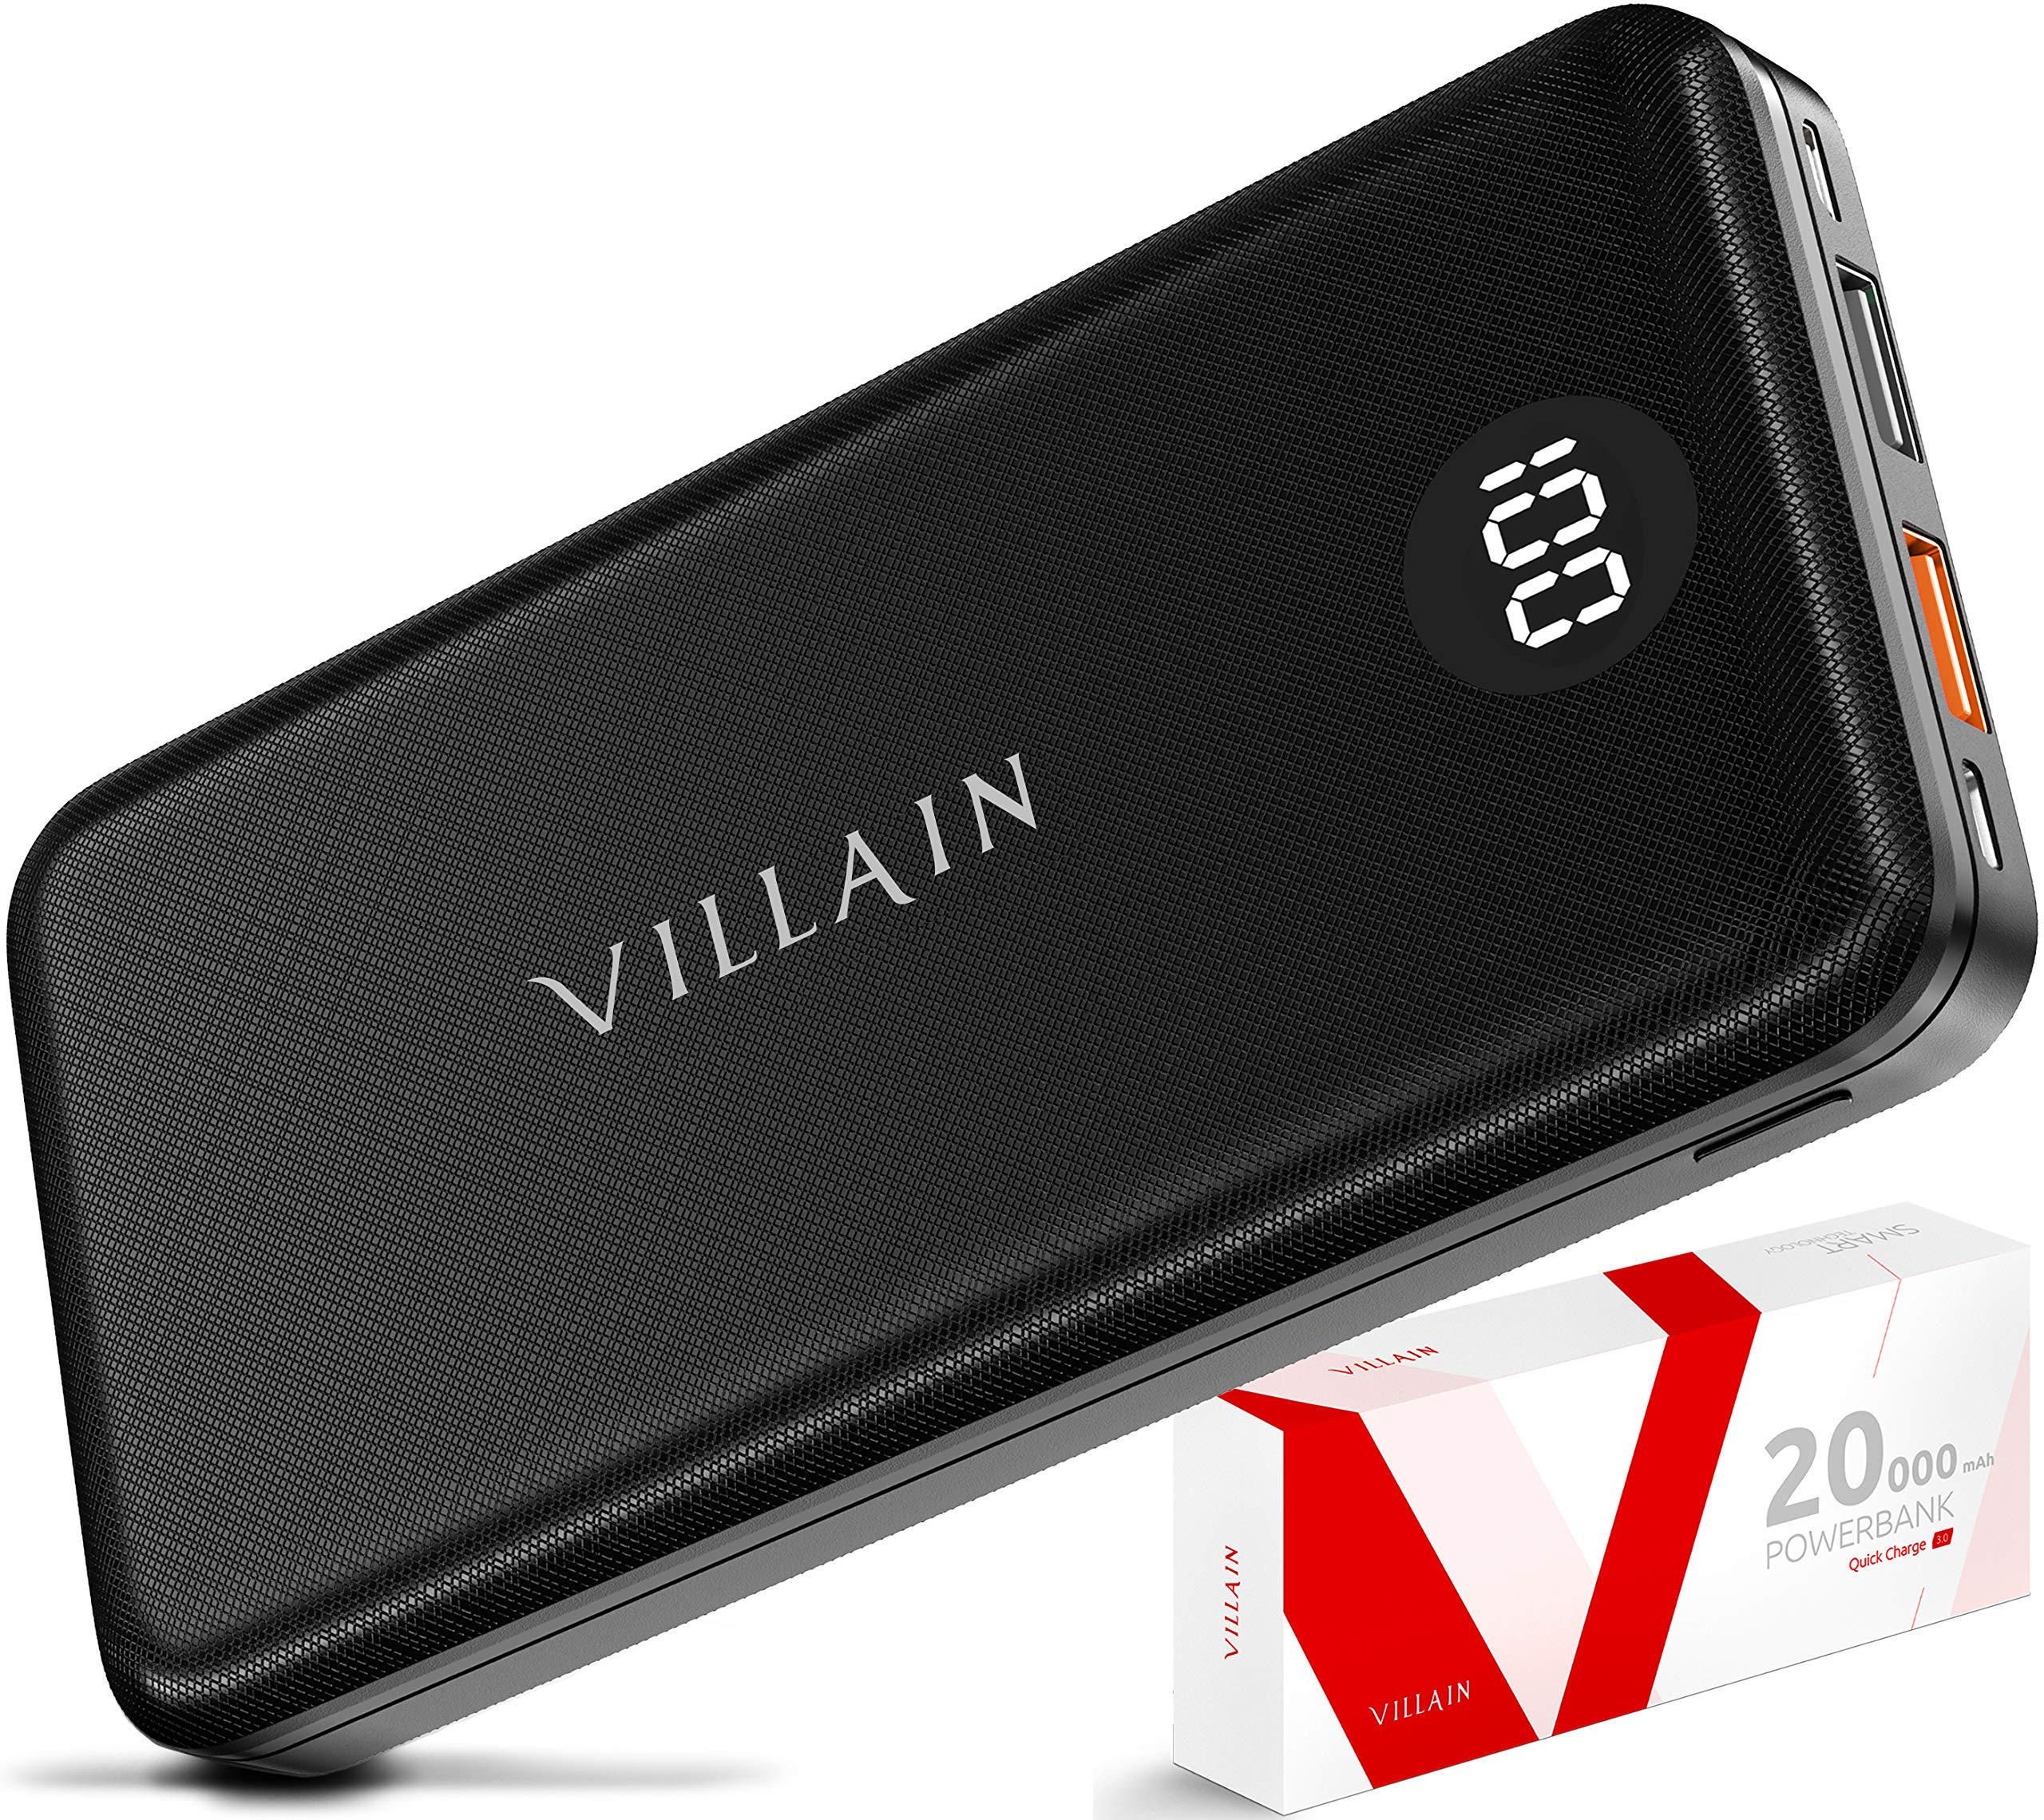 VILLAIN Portable Charger Power Bank Fast Charging Battery Pack 20000mAh Cell Phone External Battery Charger, 20W USB PD 3.0 Type C Output, Qualcomm Quick Charge for Android, iPhone, iPad, Tablet